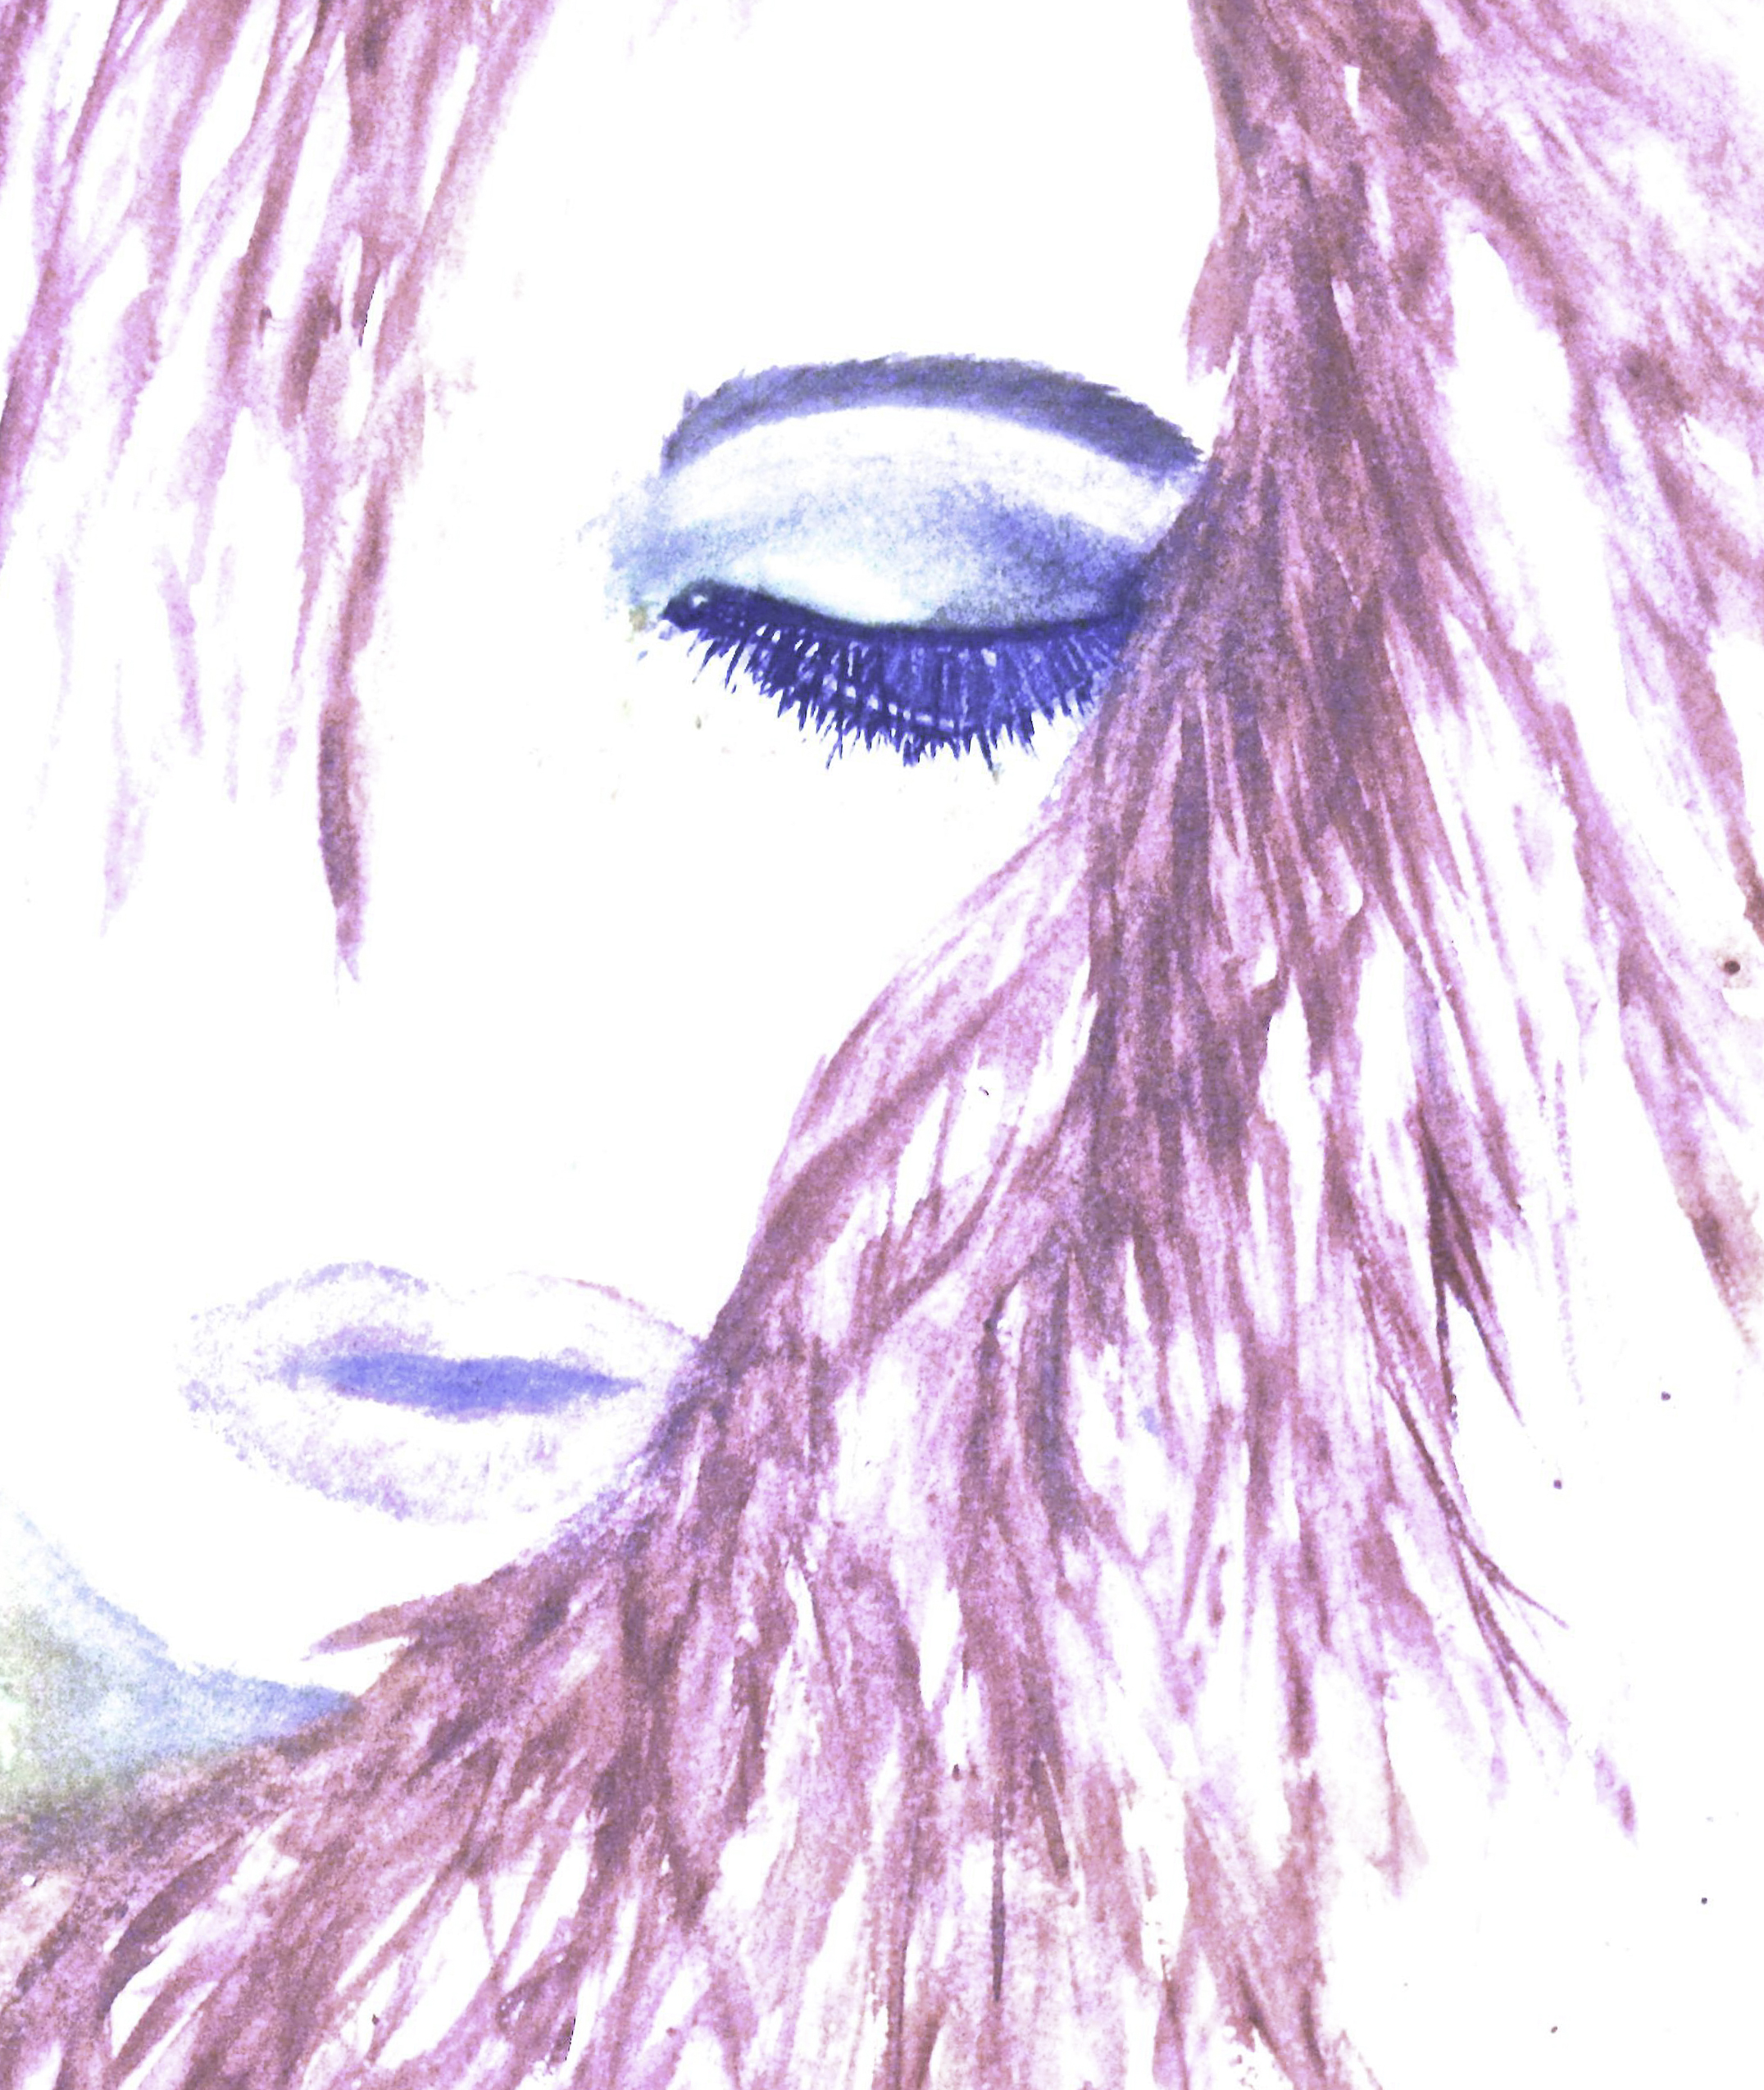 Release-Blue shadow-pink hair 2014-4